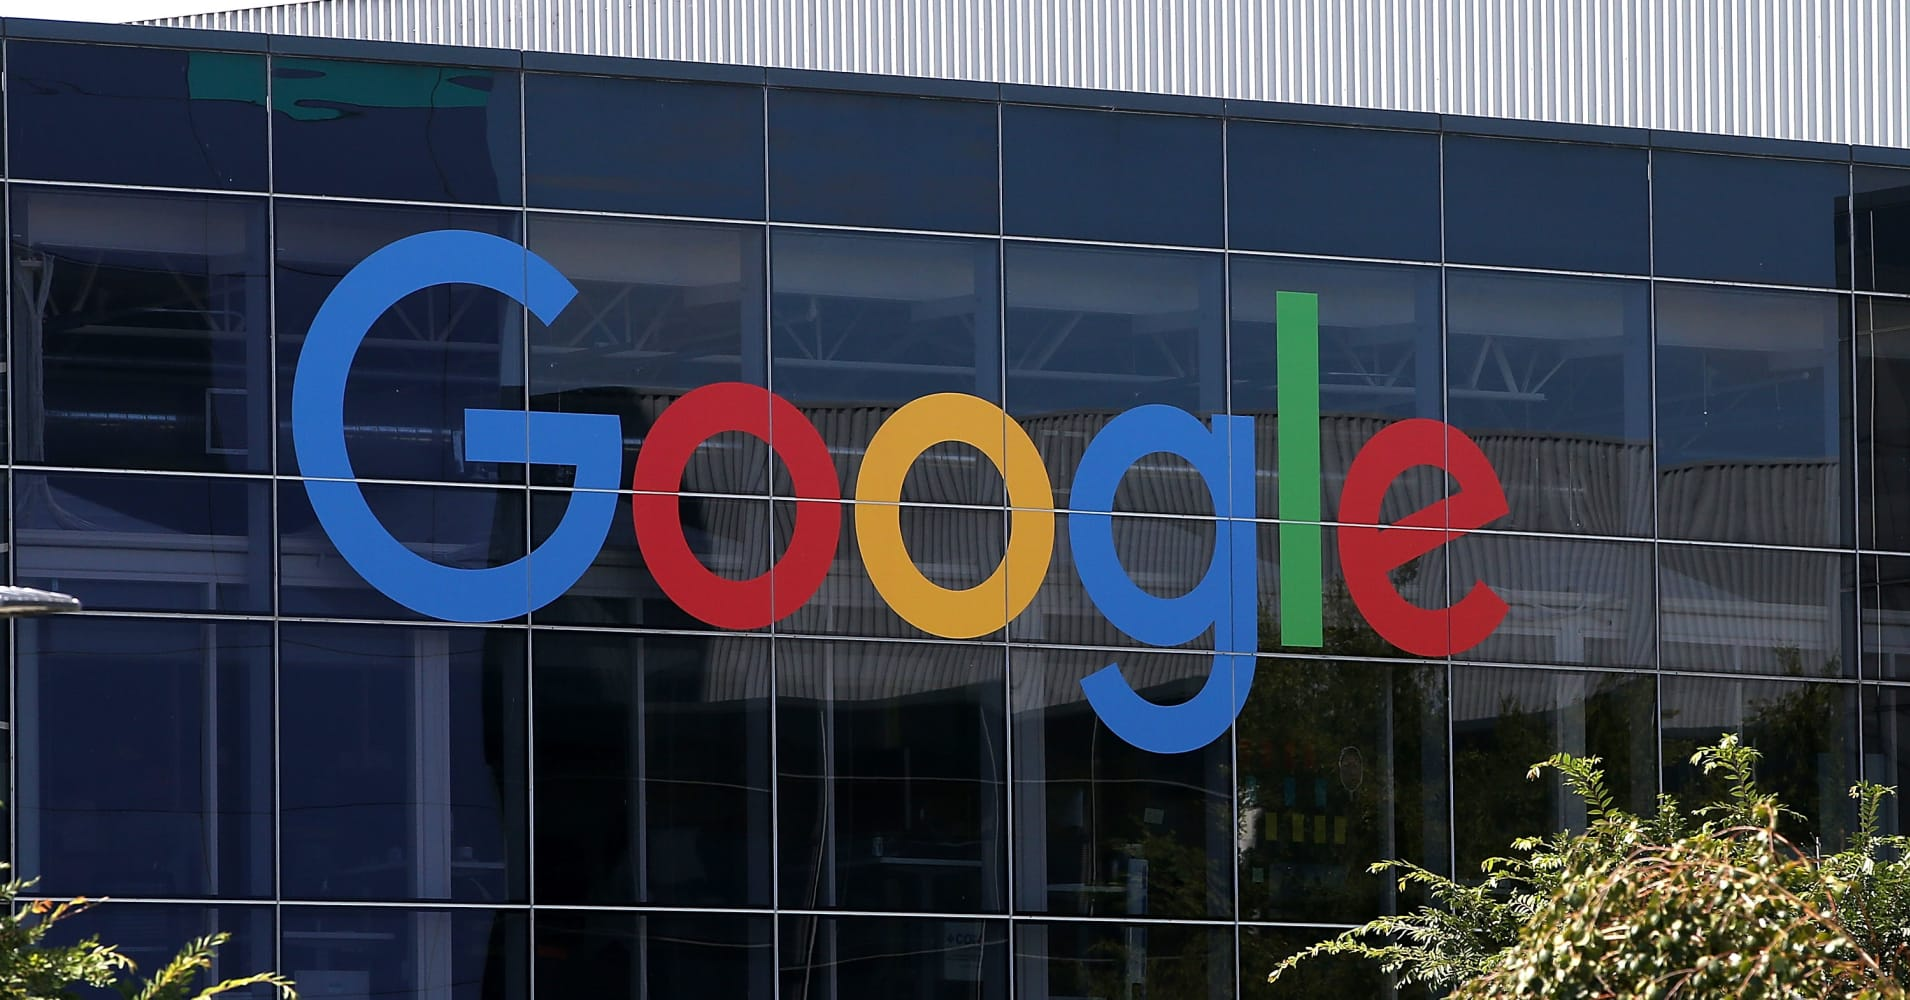 Google's $2.7 billion fine: All you need to know